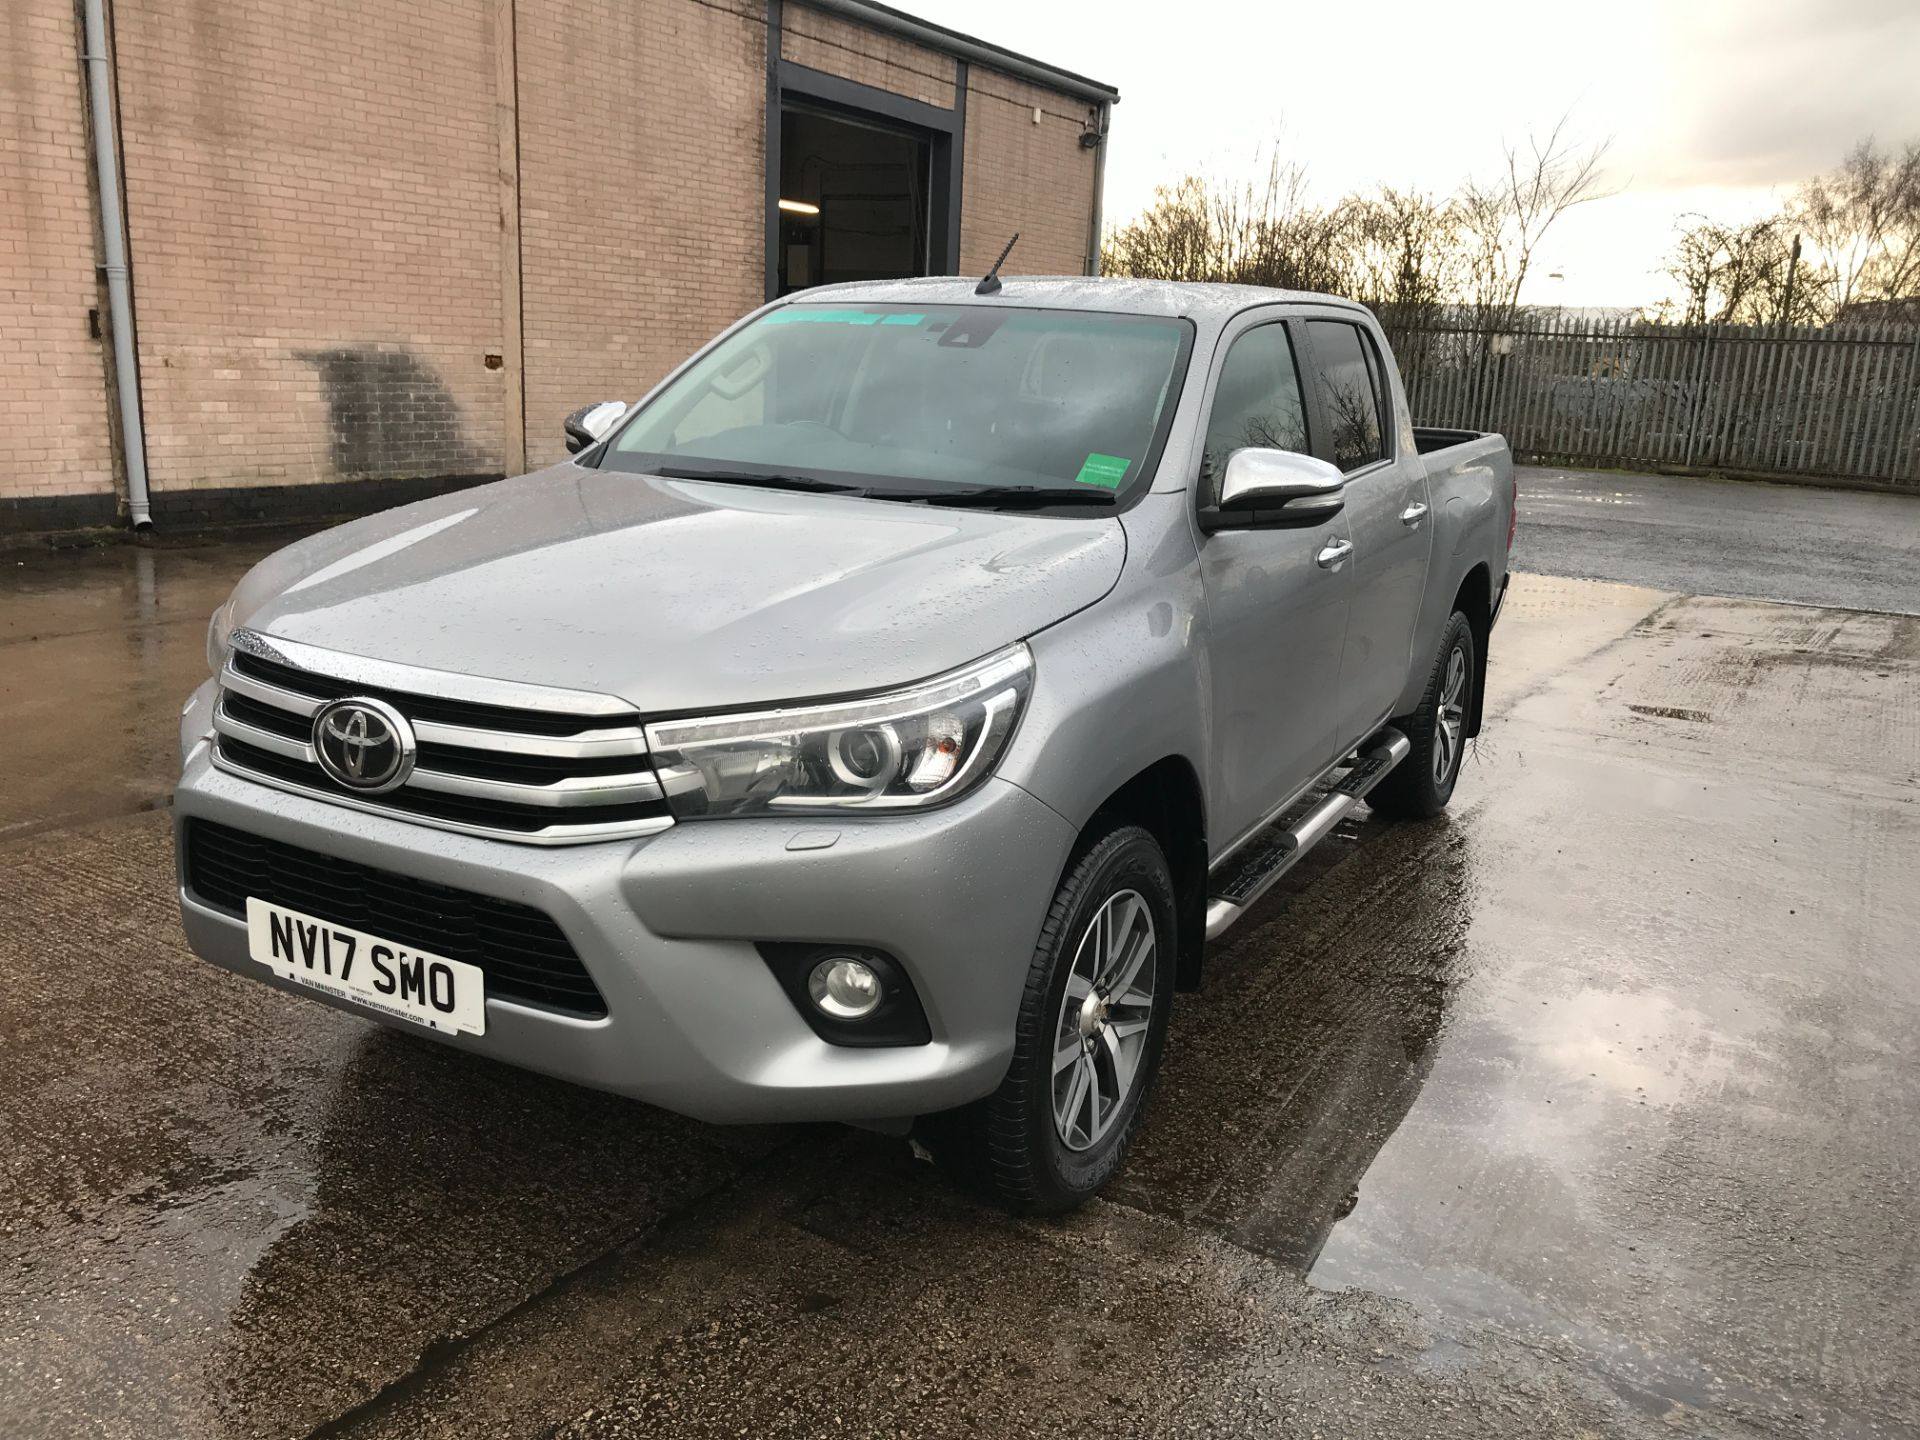 2017 Toyota Hilux  DOUBLE CAB 3.0D4D 4X4 171PS INVINCIBLE EURO 5 (NV17SMO) Image 13